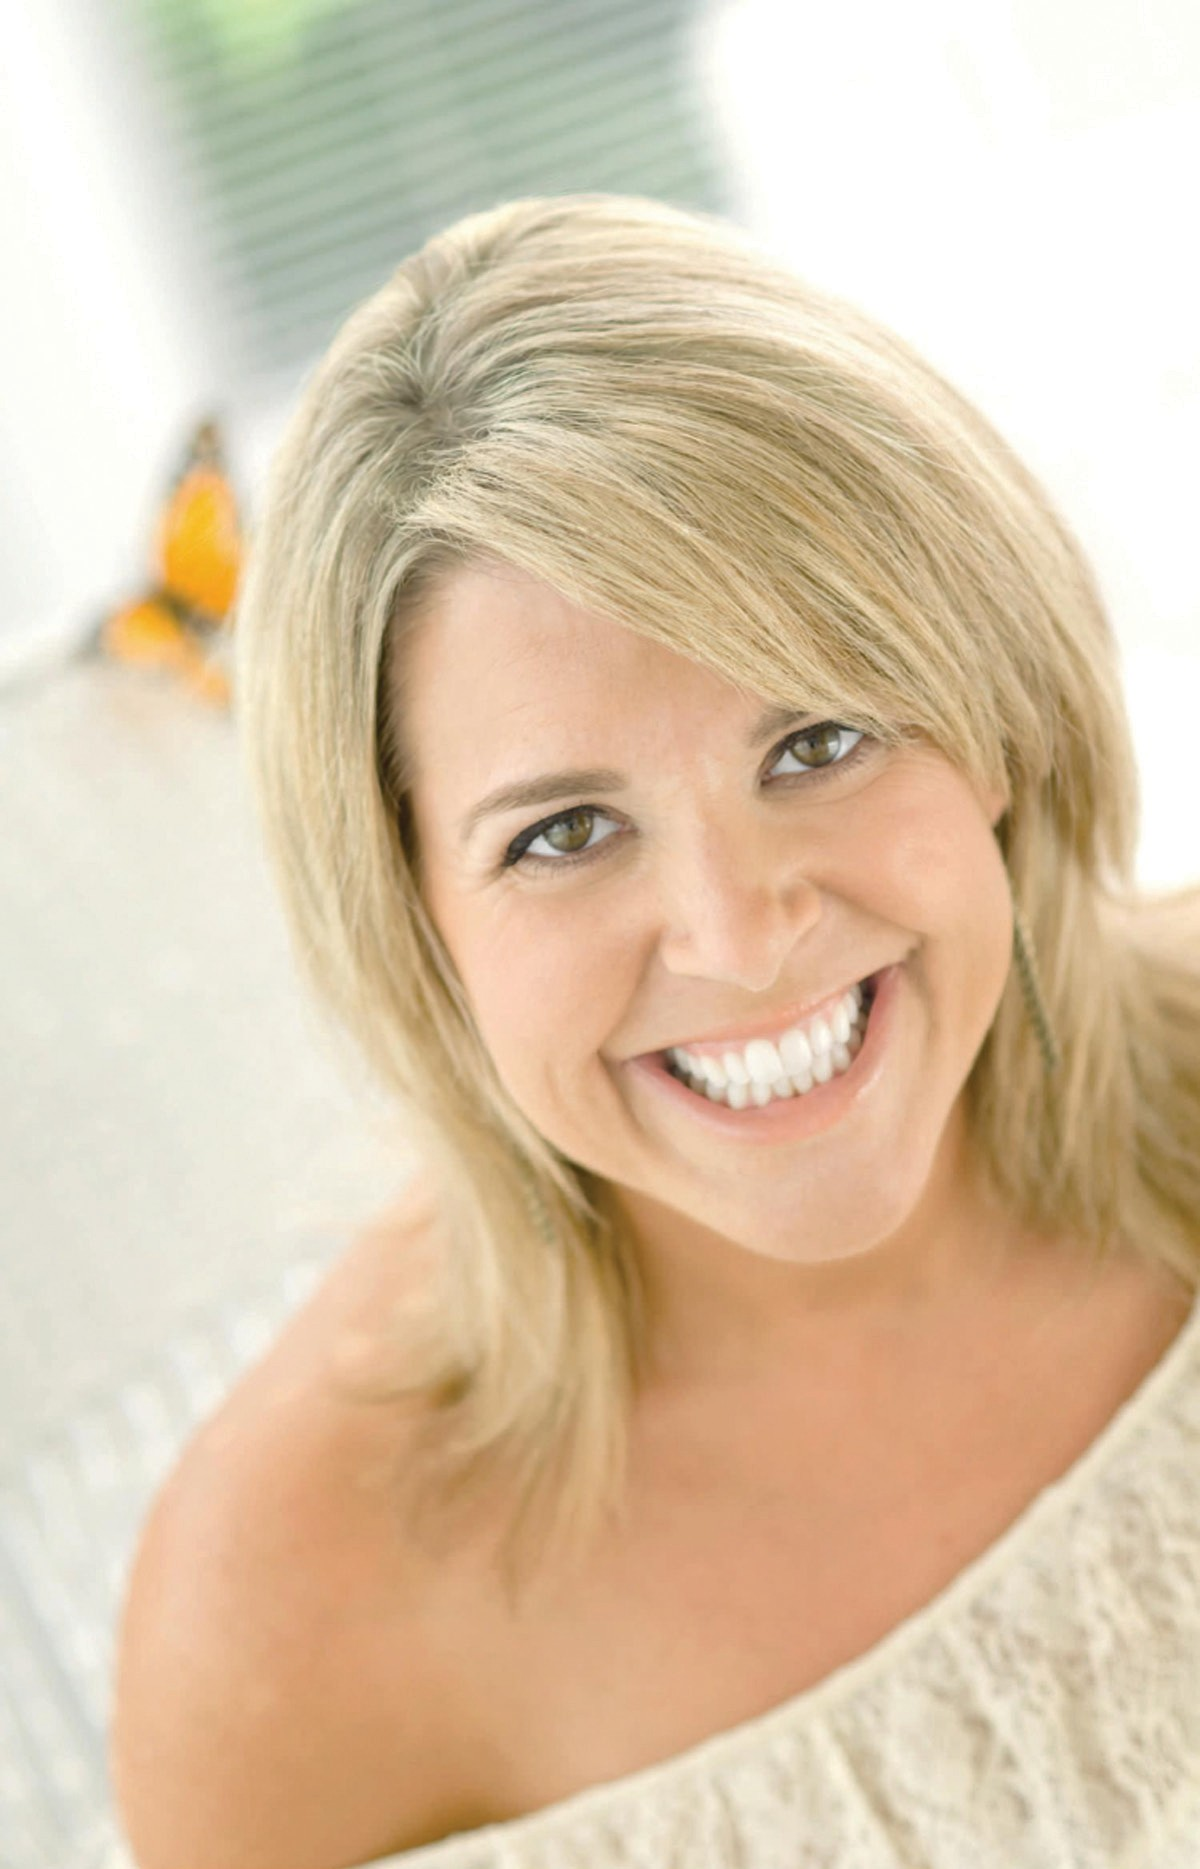 Abby Rike will be the featured speaker at the Healthy Woman Gala next Thursday, April 23.